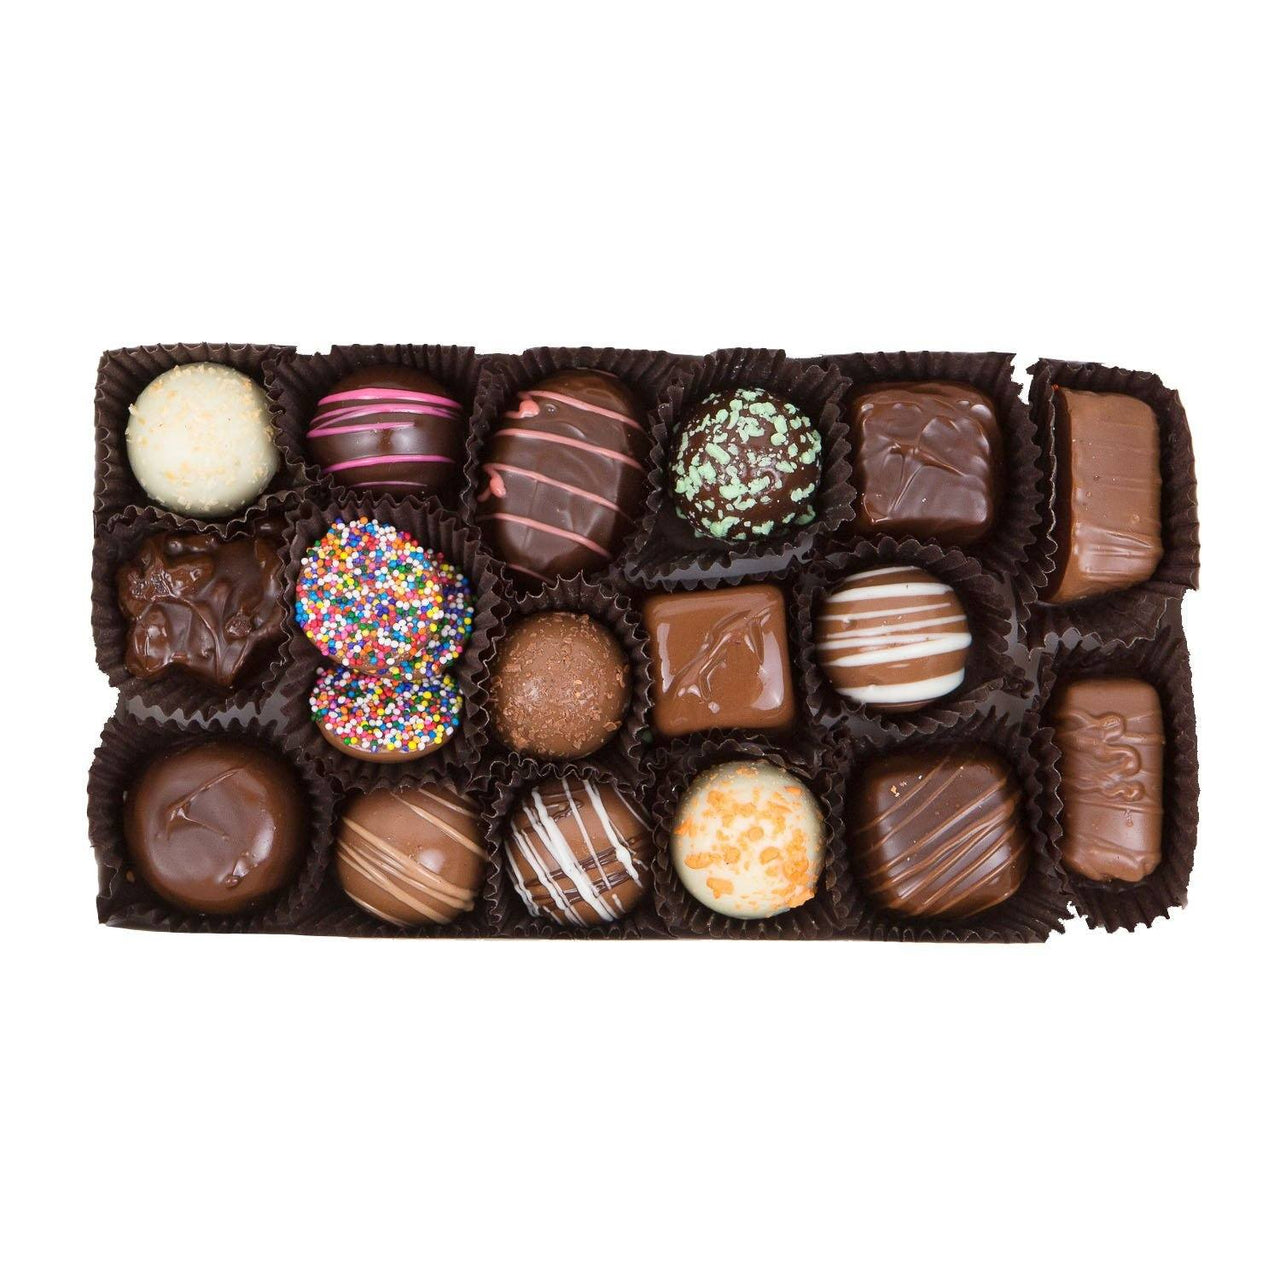 Popular Gifts 2019 - Chocolate Assortment Gift Box - Jackie's Chocolate